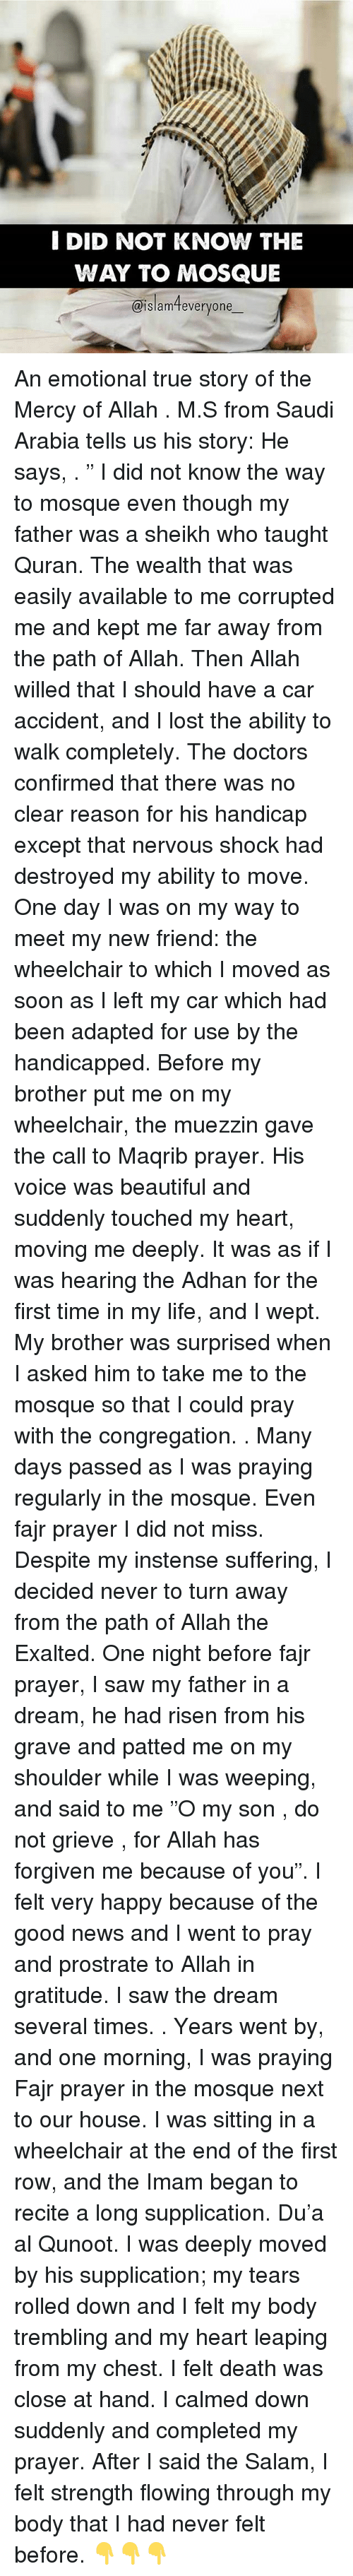 """A Dream, Beautiful, and Life: I DID NOT KNOW THE  WAY TO MOSQUE  islam everyone An emotional true story of the Mercy of Allah . M.S from Saudi Arabia tells us his story: He says, . """" I did not know the way to mosque even though my father was a sheikh who taught Quran. The wealth that was easily available to me corrupted me and kept me far away from the path of Allah. Then Allah willed that I should have a car accident, and I lost the ability to walk completely. The doctors confirmed that there was no clear reason for his handicap except that nervous shock had destroyed my ability to move. One day I was on my way to meet my new friend: the wheelchair to which I moved as soon as I left my car which had been adapted for use by the handicapped. Before my brother put me on my wheelchair, the muezzin gave the call to Maqrib prayer. His voice was beautiful and suddenly touched my heart, moving me deeply. It was as if I was hearing the Adhan for the first time in my life, and I wept. My brother was surprised when I asked him to take me to the mosque so that I could pray with the congregation. . Many days passed as I was praying regularly in the mosque. Even fajr prayer I did not miss. Despite my instense suffering, I decided never to turn away from the path of Allah the Exalted. One night before fajr prayer, I saw my father in a dream, he had risen from his grave and patted me on my shoulder while I was weeping, and said to me """"O my son , do not grieve , for Allah has forgiven me because of you"""". I felt very happy because of the good news and I went to pray and prostrate to Allah in gratitude. I saw the dream several times. . Years went by, and one morning, I was praying Fajr prayer in the mosque next to our house. I was sitting in a wheelchair at the end of the first row, and the Imam began to recite a long supplication. Du'a al Qunoot. I was deeply moved by his supplication; my tears rolled down and I felt my body trembling and my heart leaping from my chest. I felt death"""